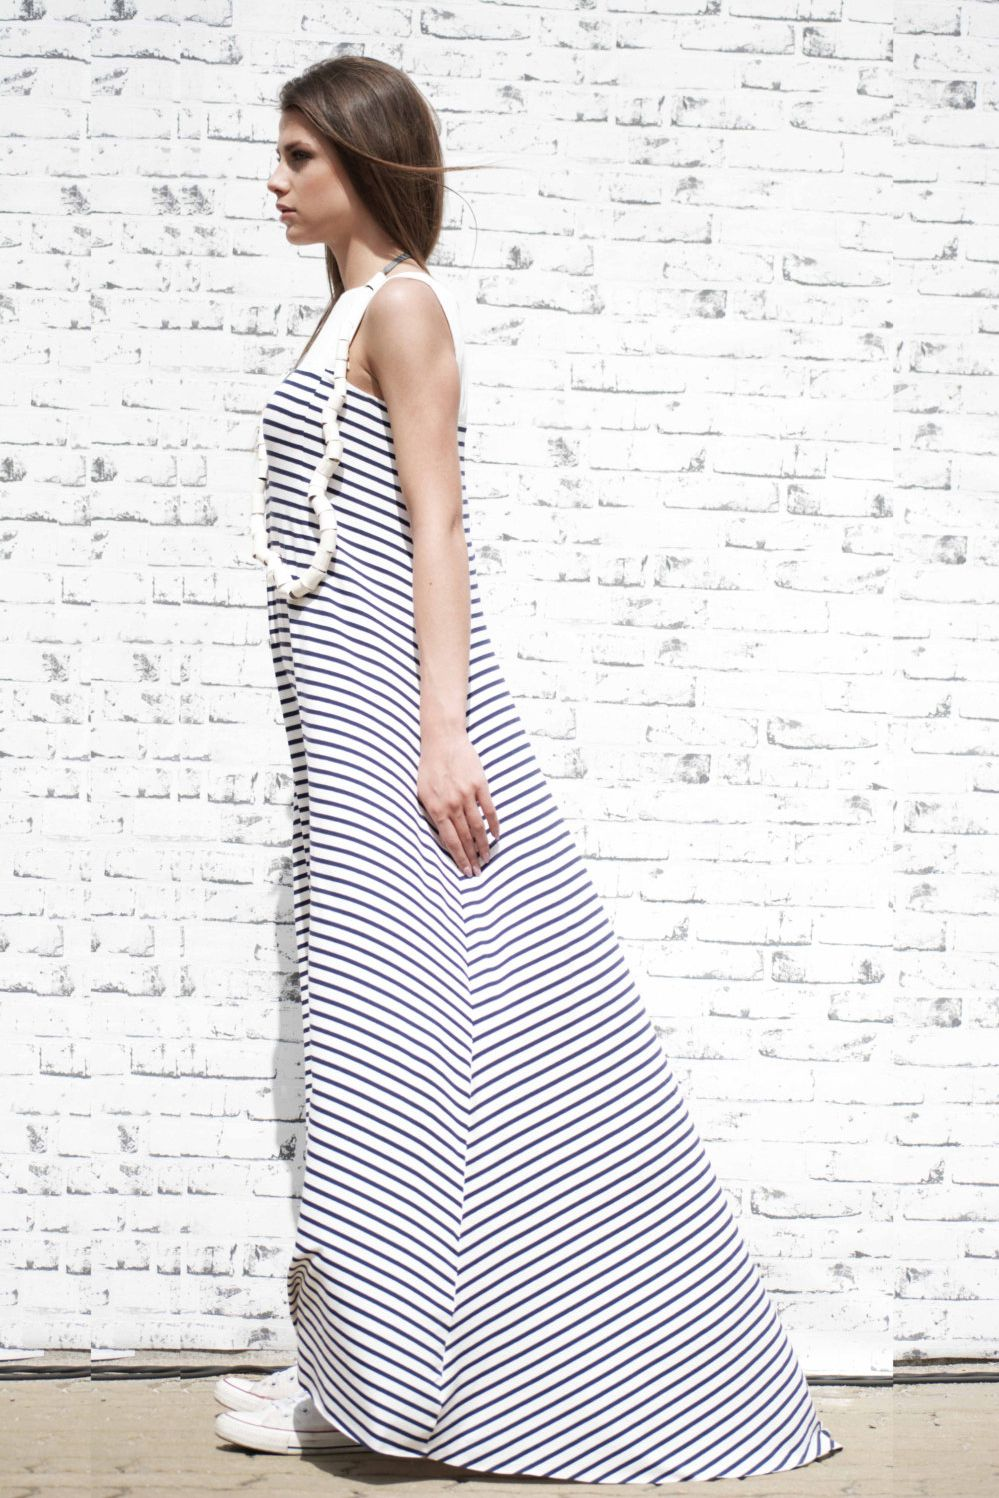 The maxi dress with a whole lot of summer inspiration wardrobe